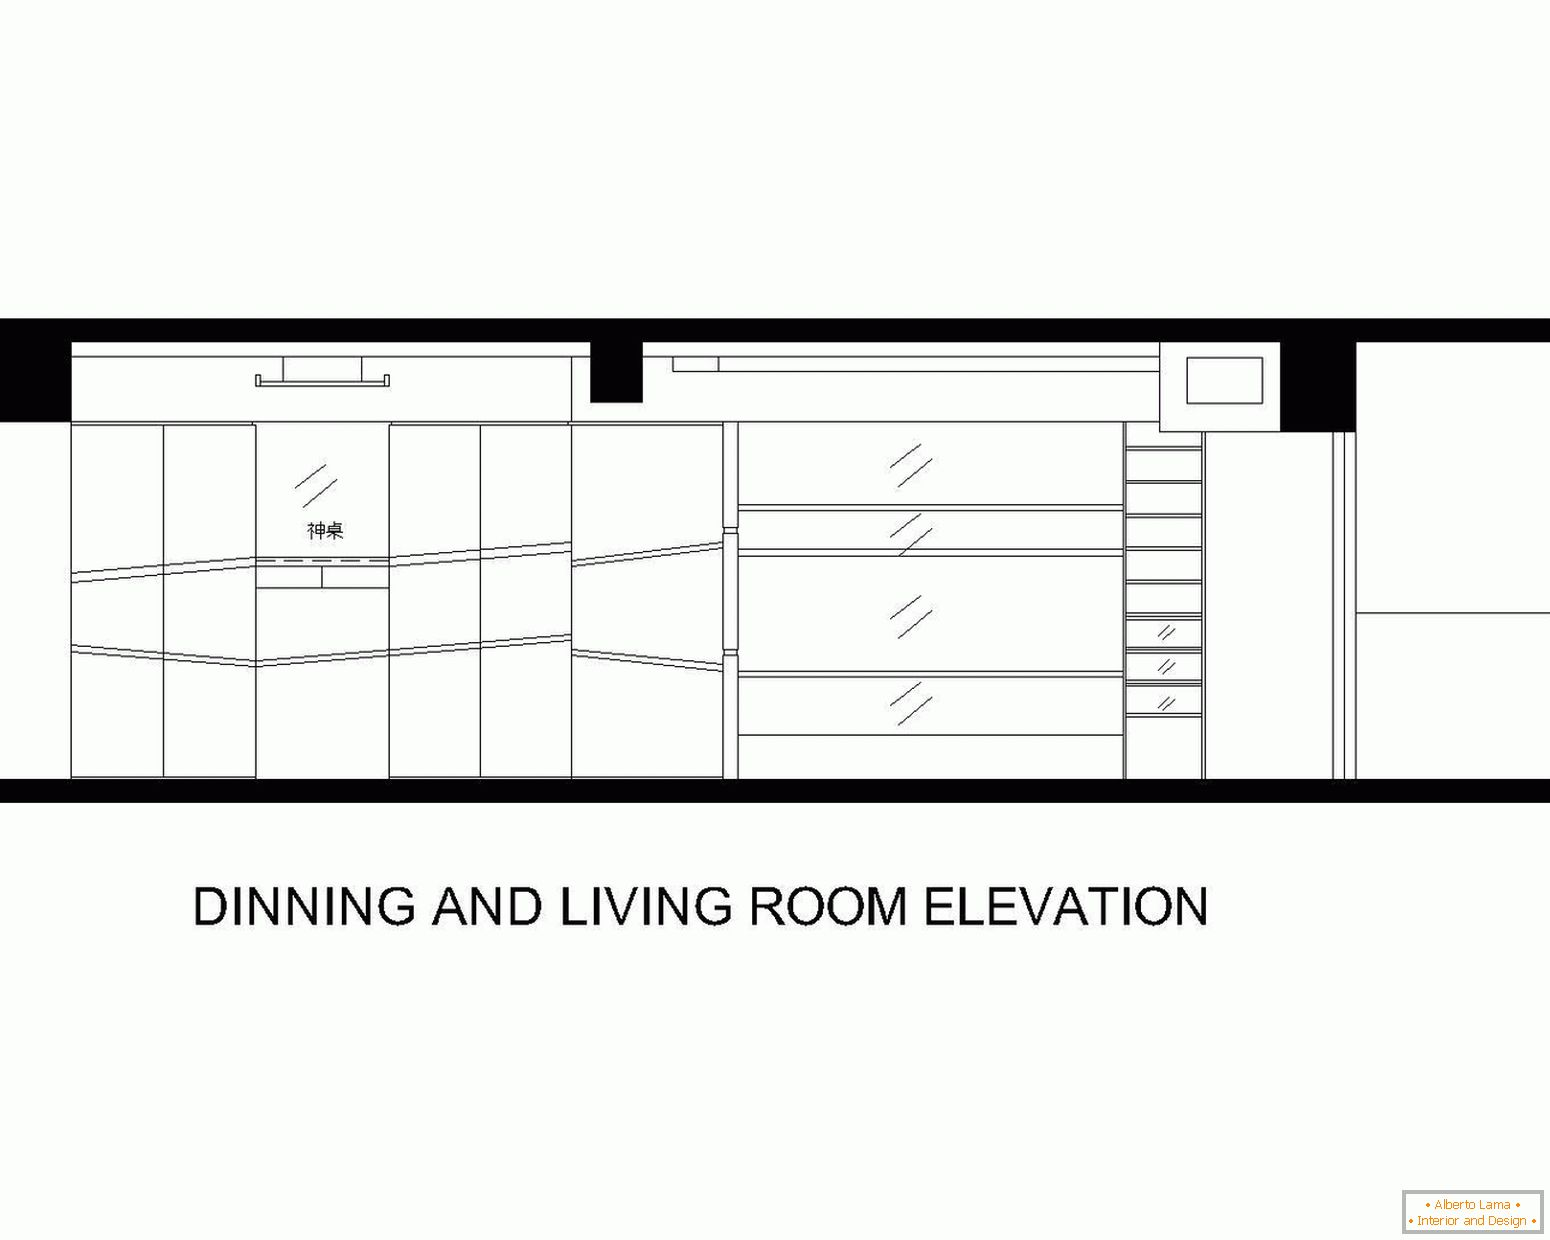 Plan of dining room and living room